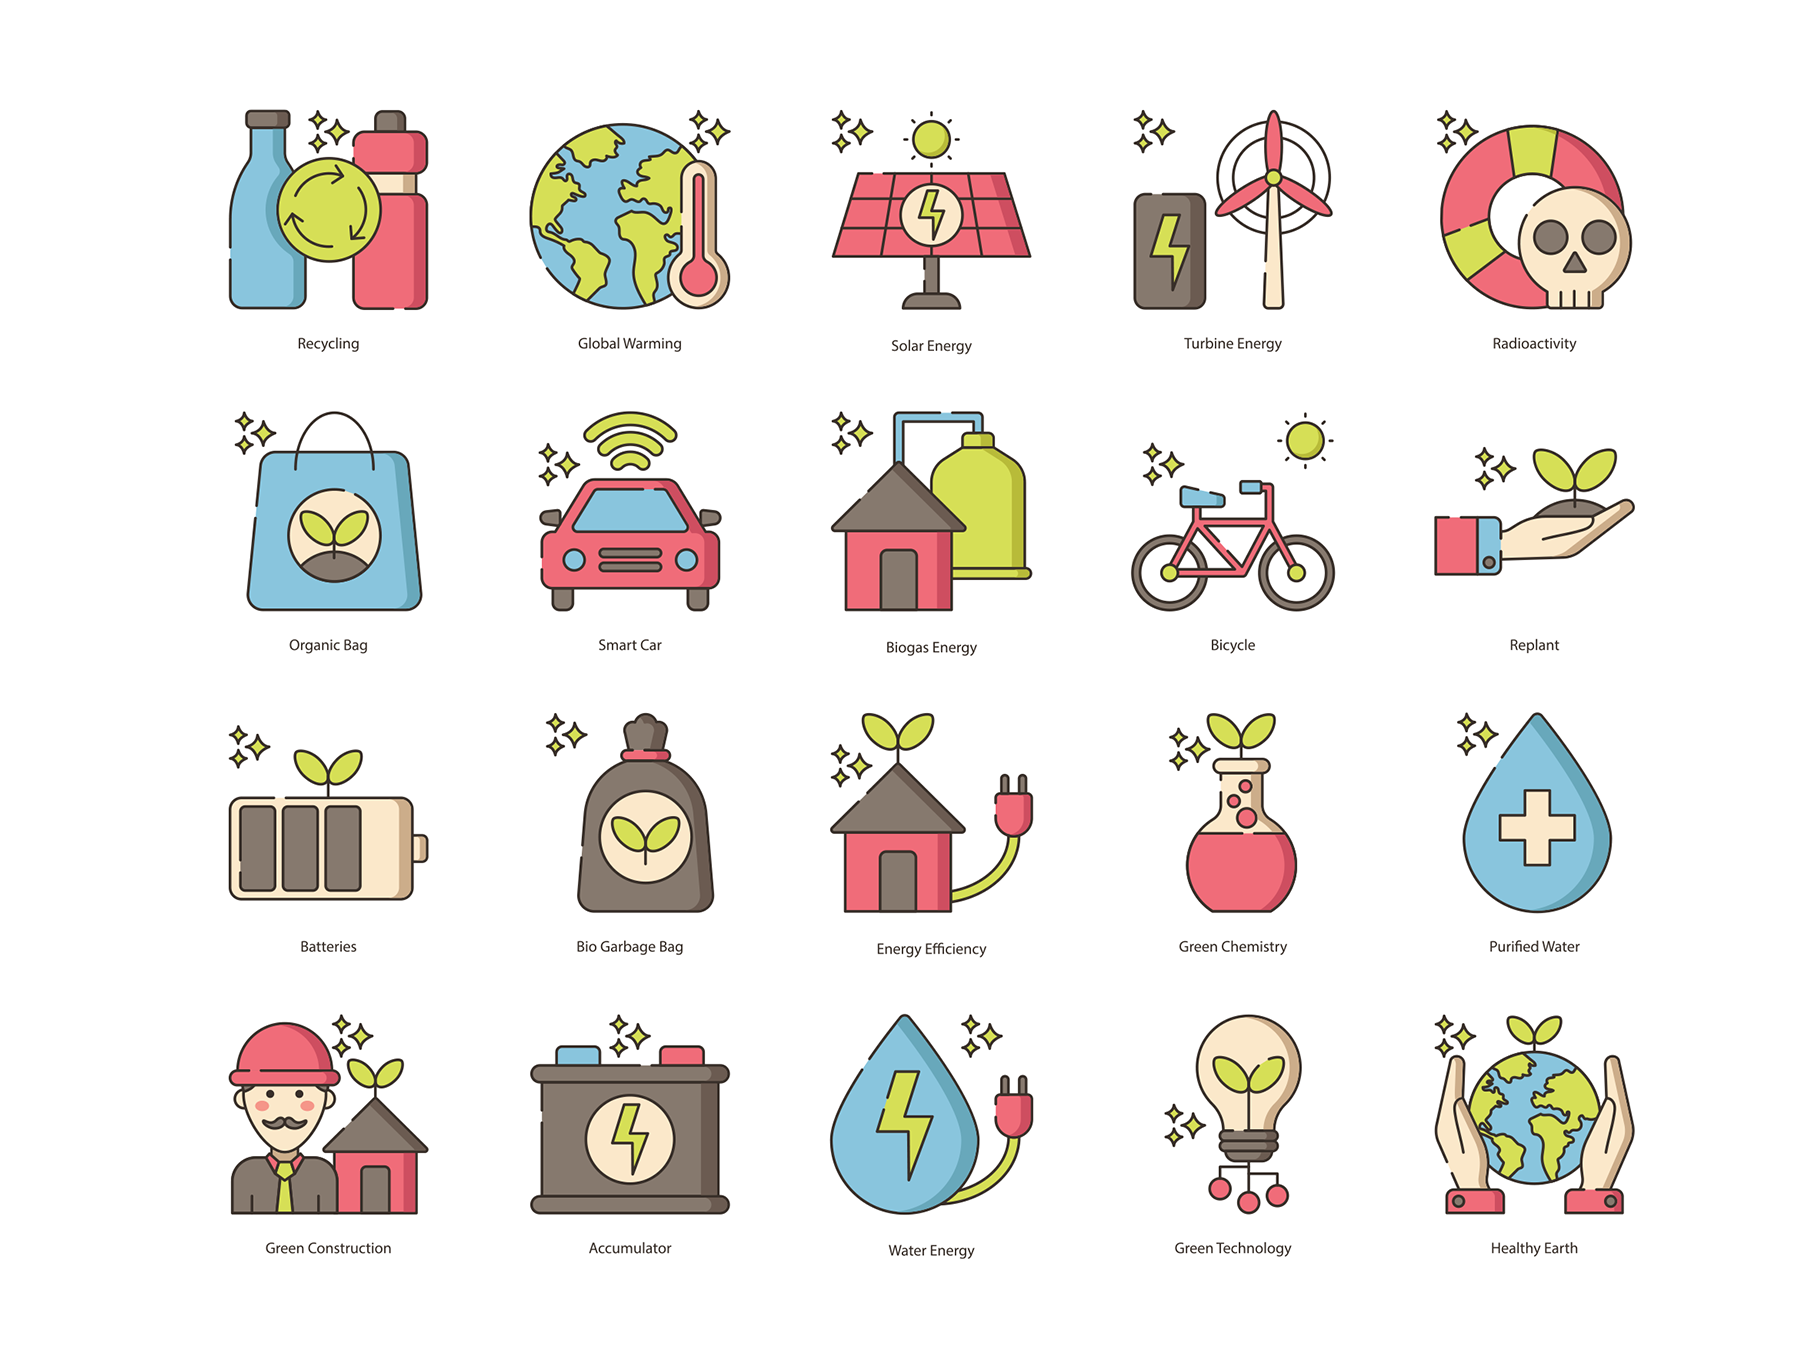 ecology-icons-ui8-detail-image-4_1544766184846.png